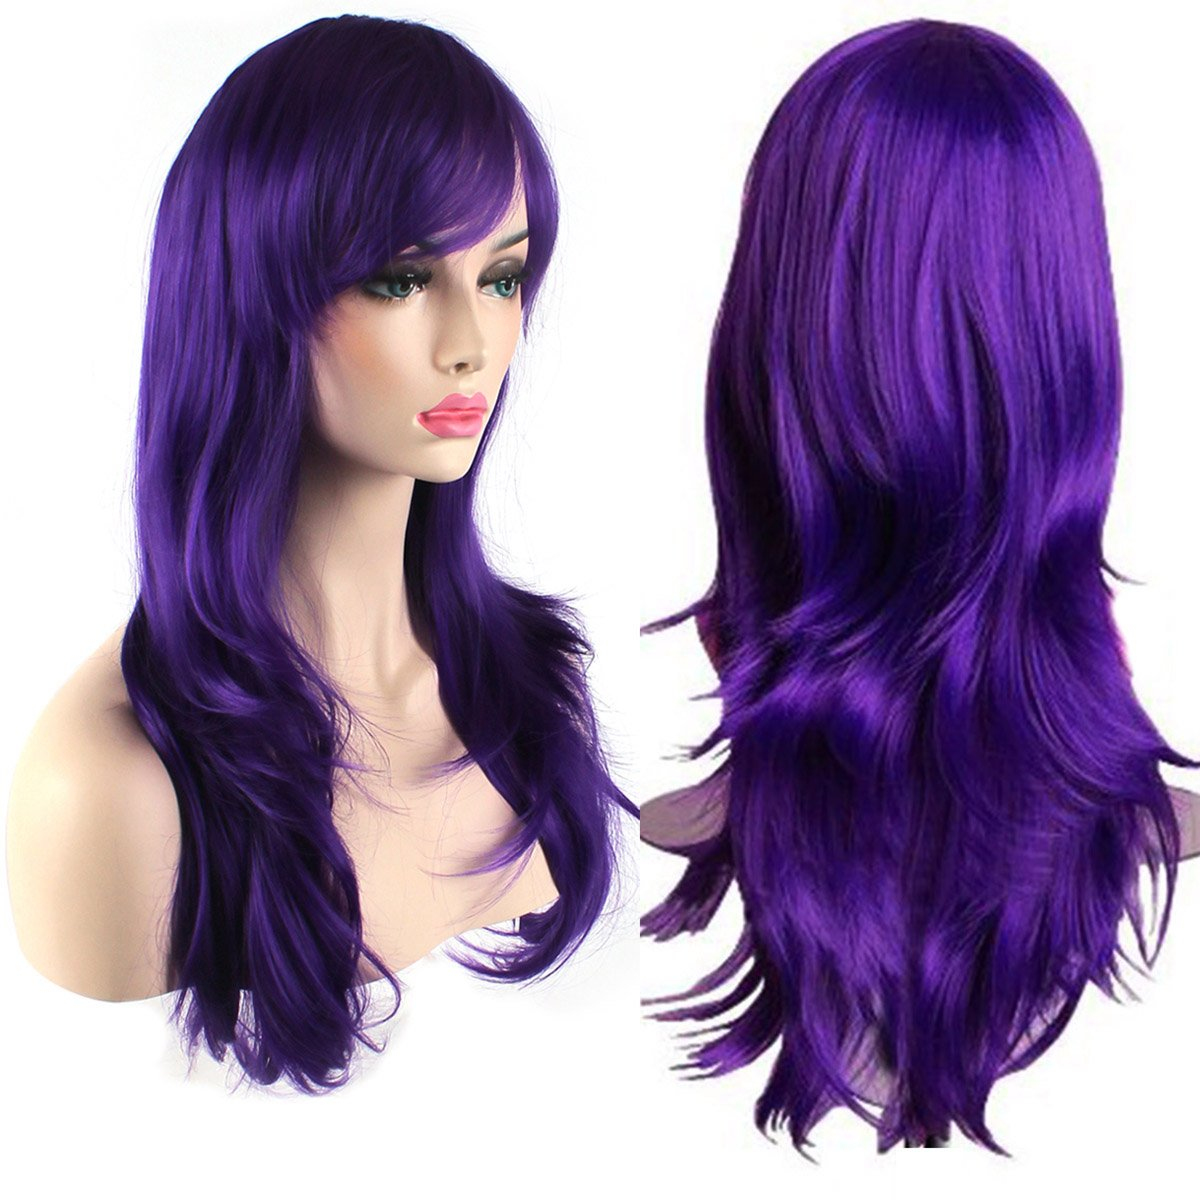 AKStore Womens Heat Resistant 28-Inch 70cm Long Curly Hair Wig with Wig Cap,